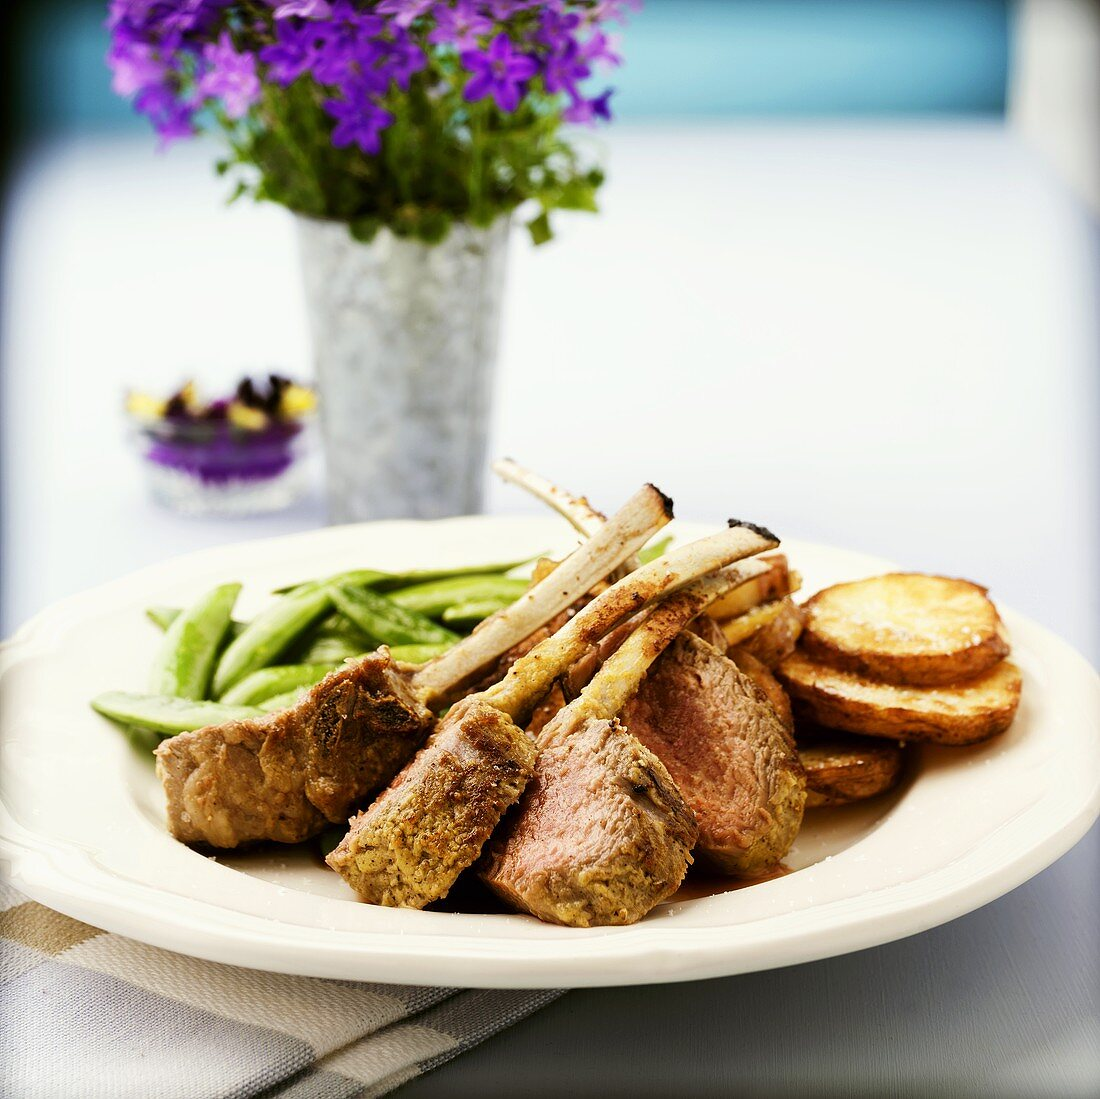 Lamb cutlets with pea pods and fried potato slices